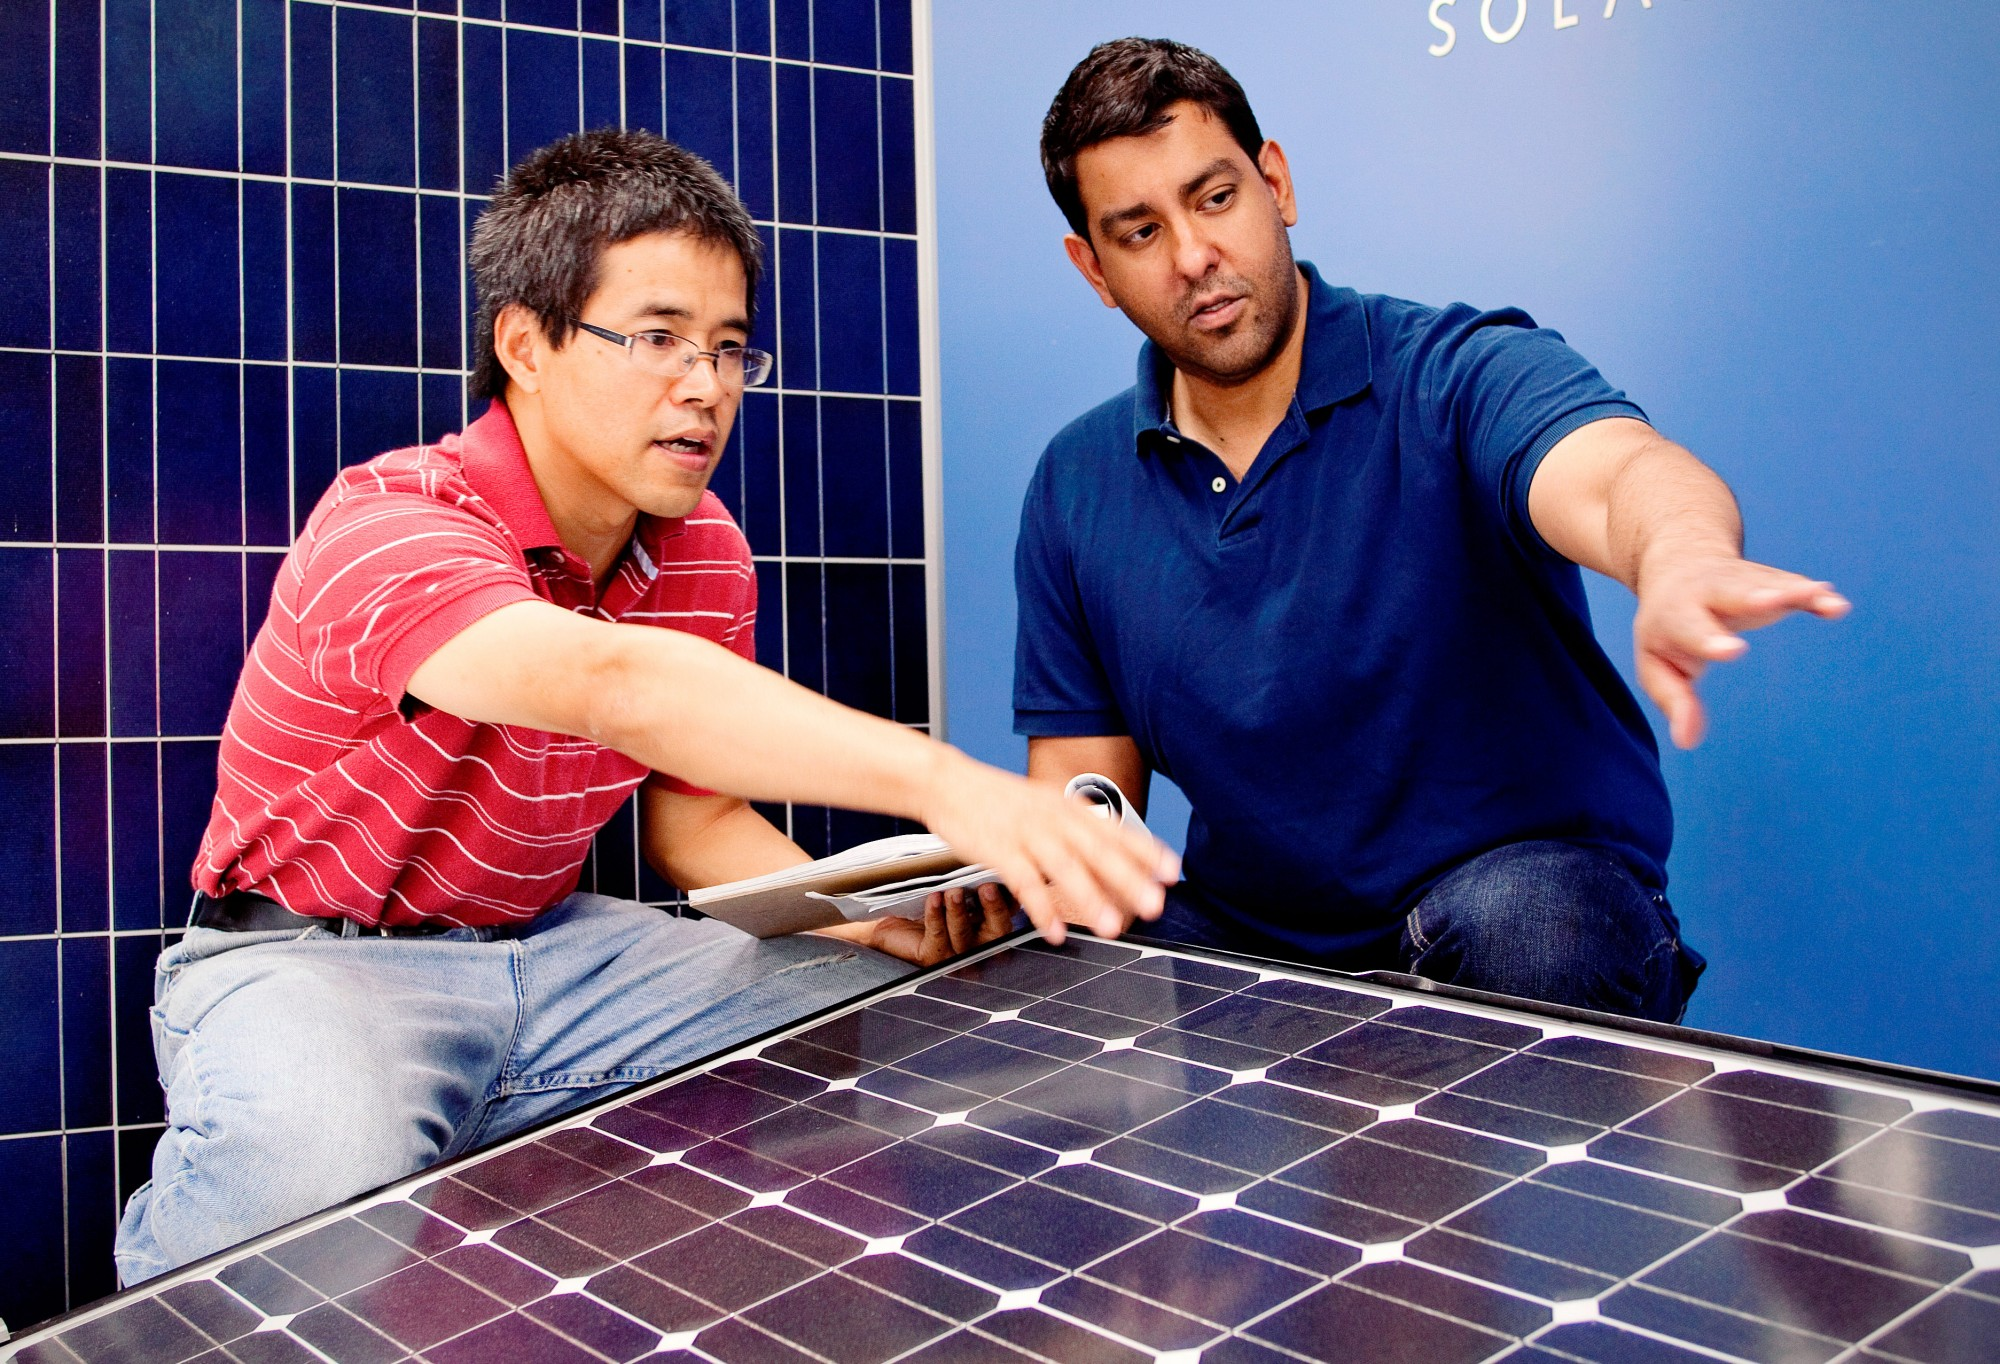 Engineering students discussing on solar panels.